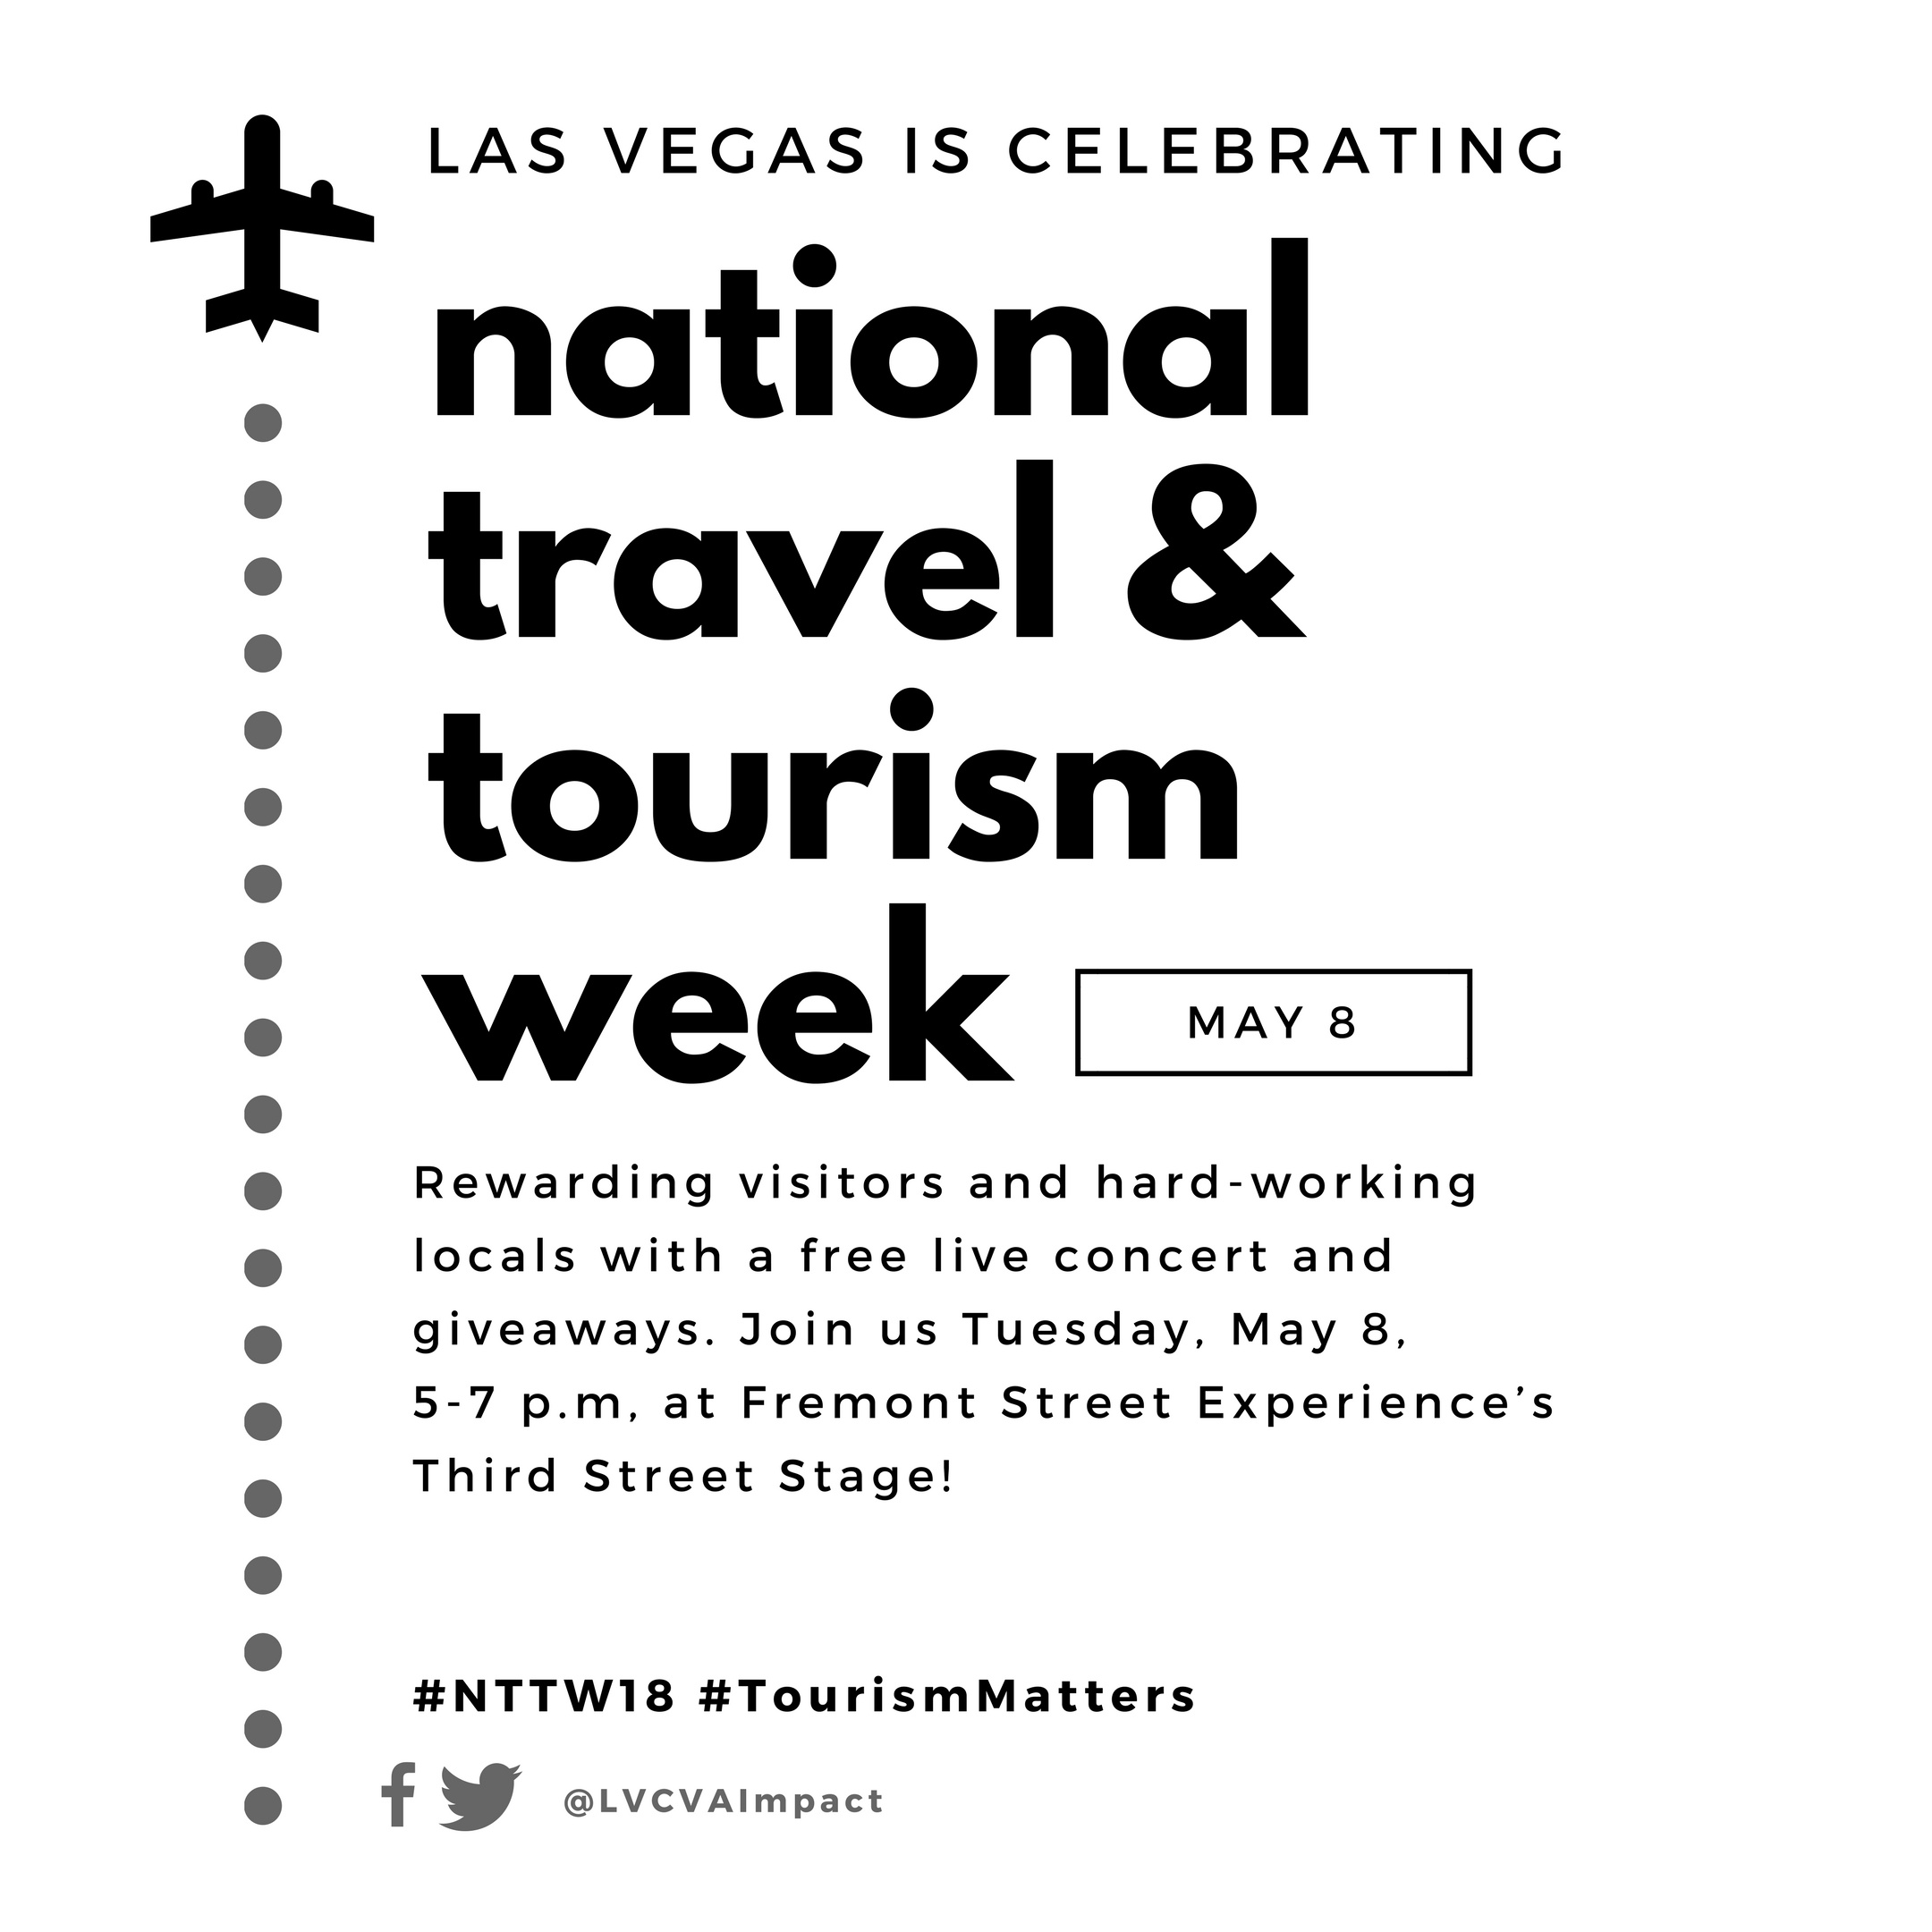 national_tourism_week_lv-1.jpg